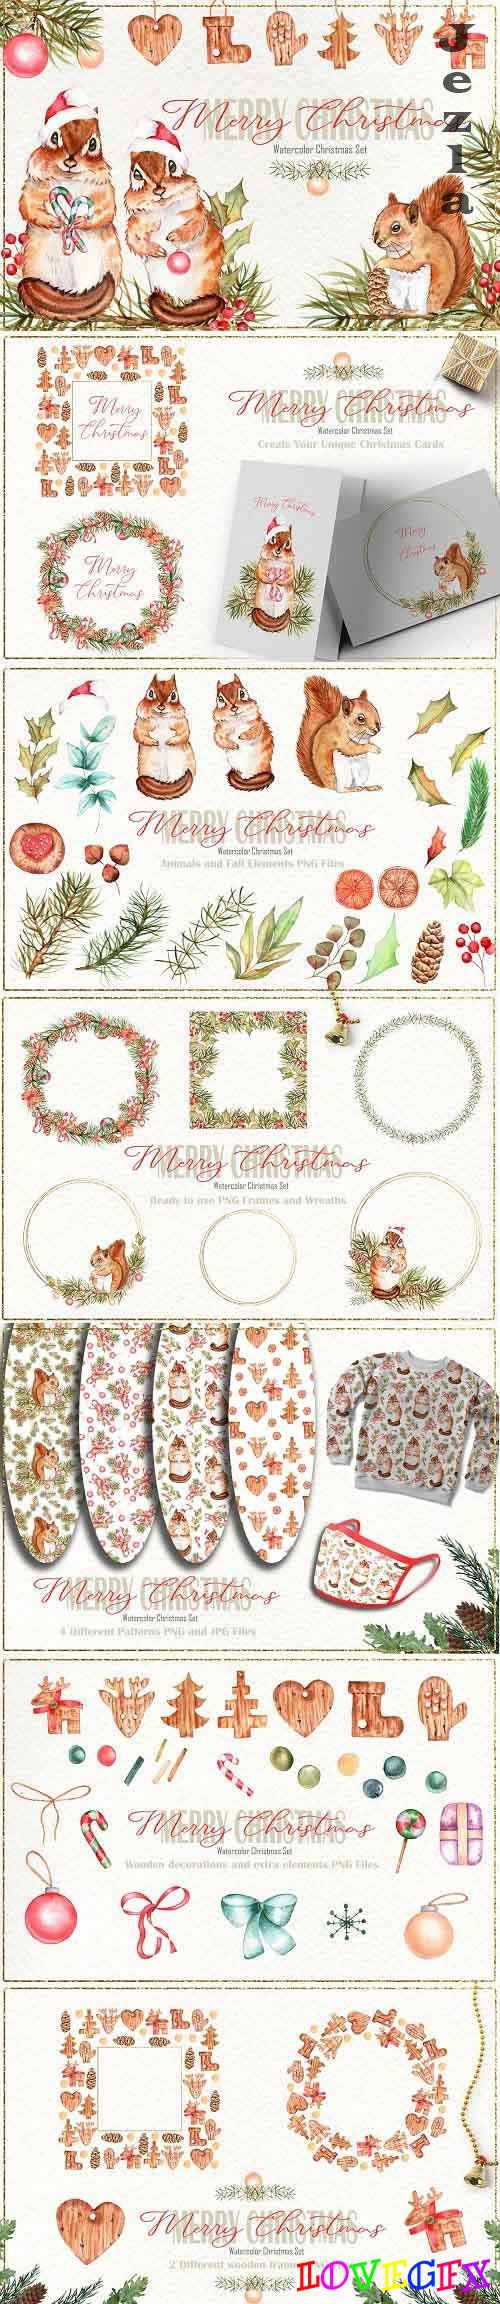 Merry Christmas Watercolor Set - 5436836